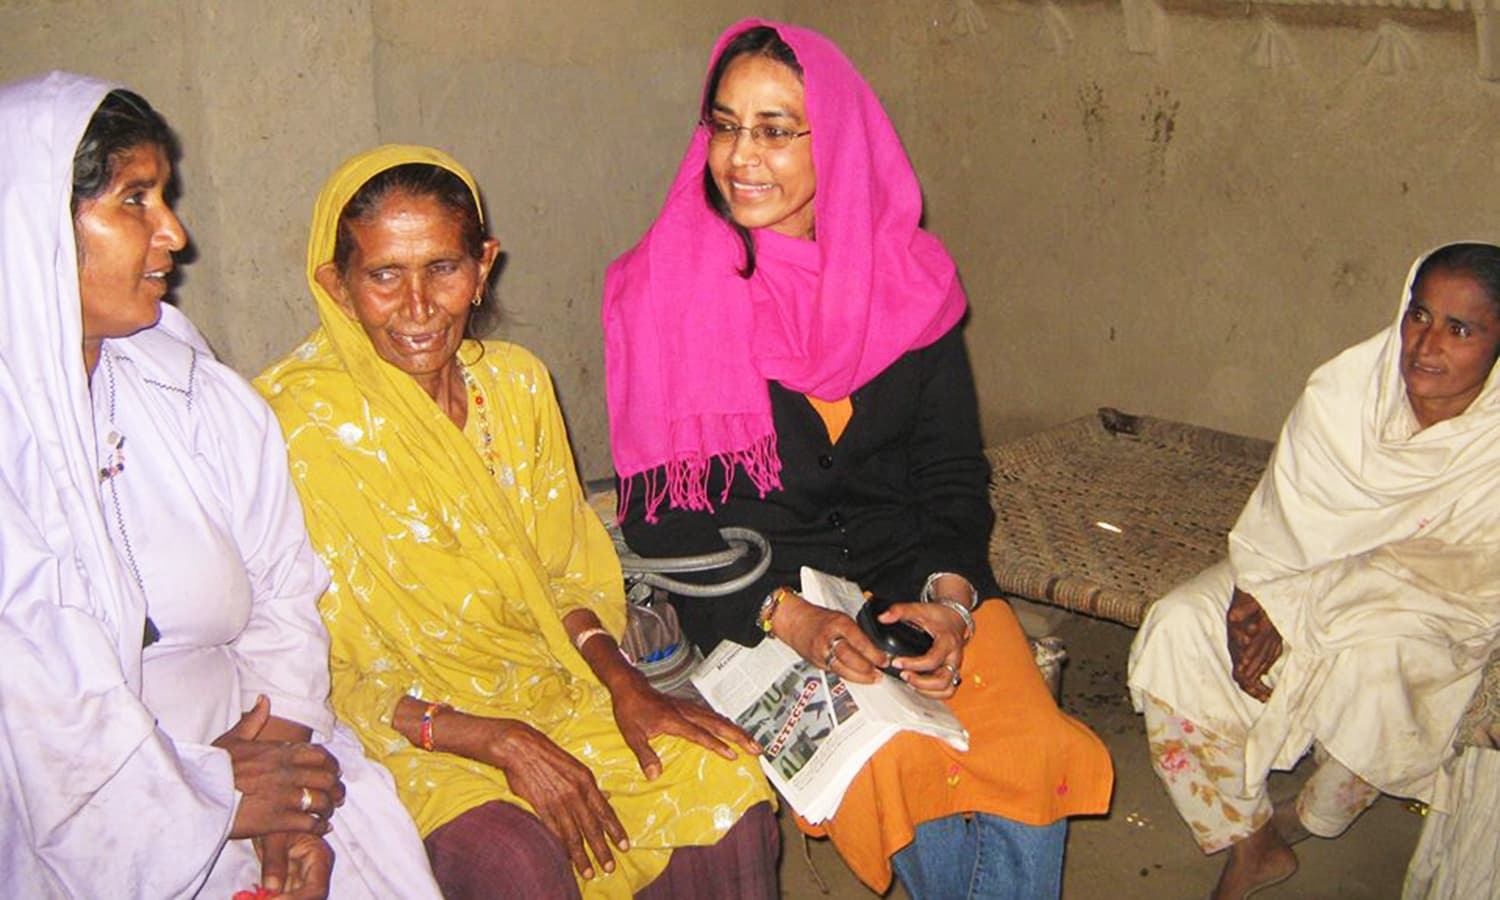 Perween having a conversation with women in Orangi. Photo credit: Justice for Perween Rahman